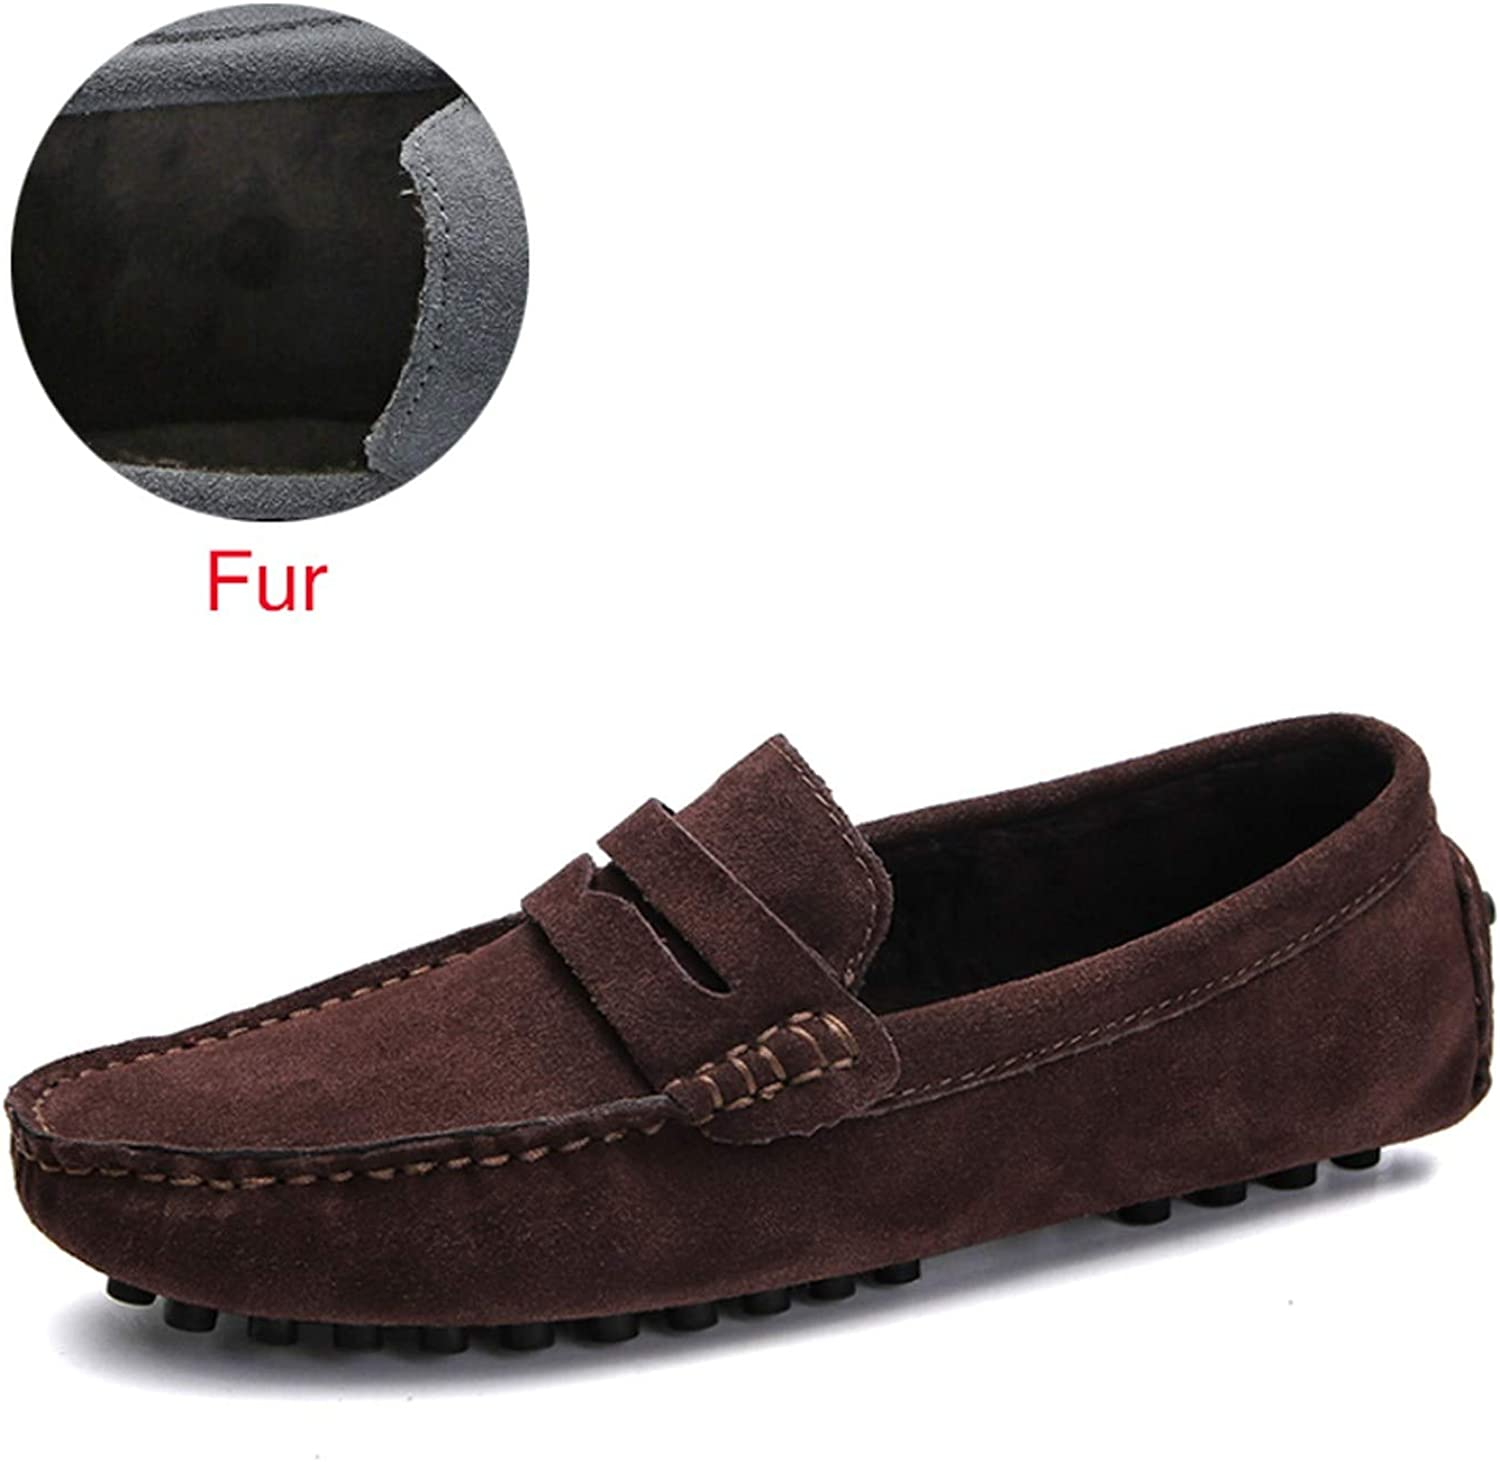 Soft Moccasins Men Loafers Genuine Leather Shoes Men Flats Gommino Driving Shoes,02 Fur Brown,7